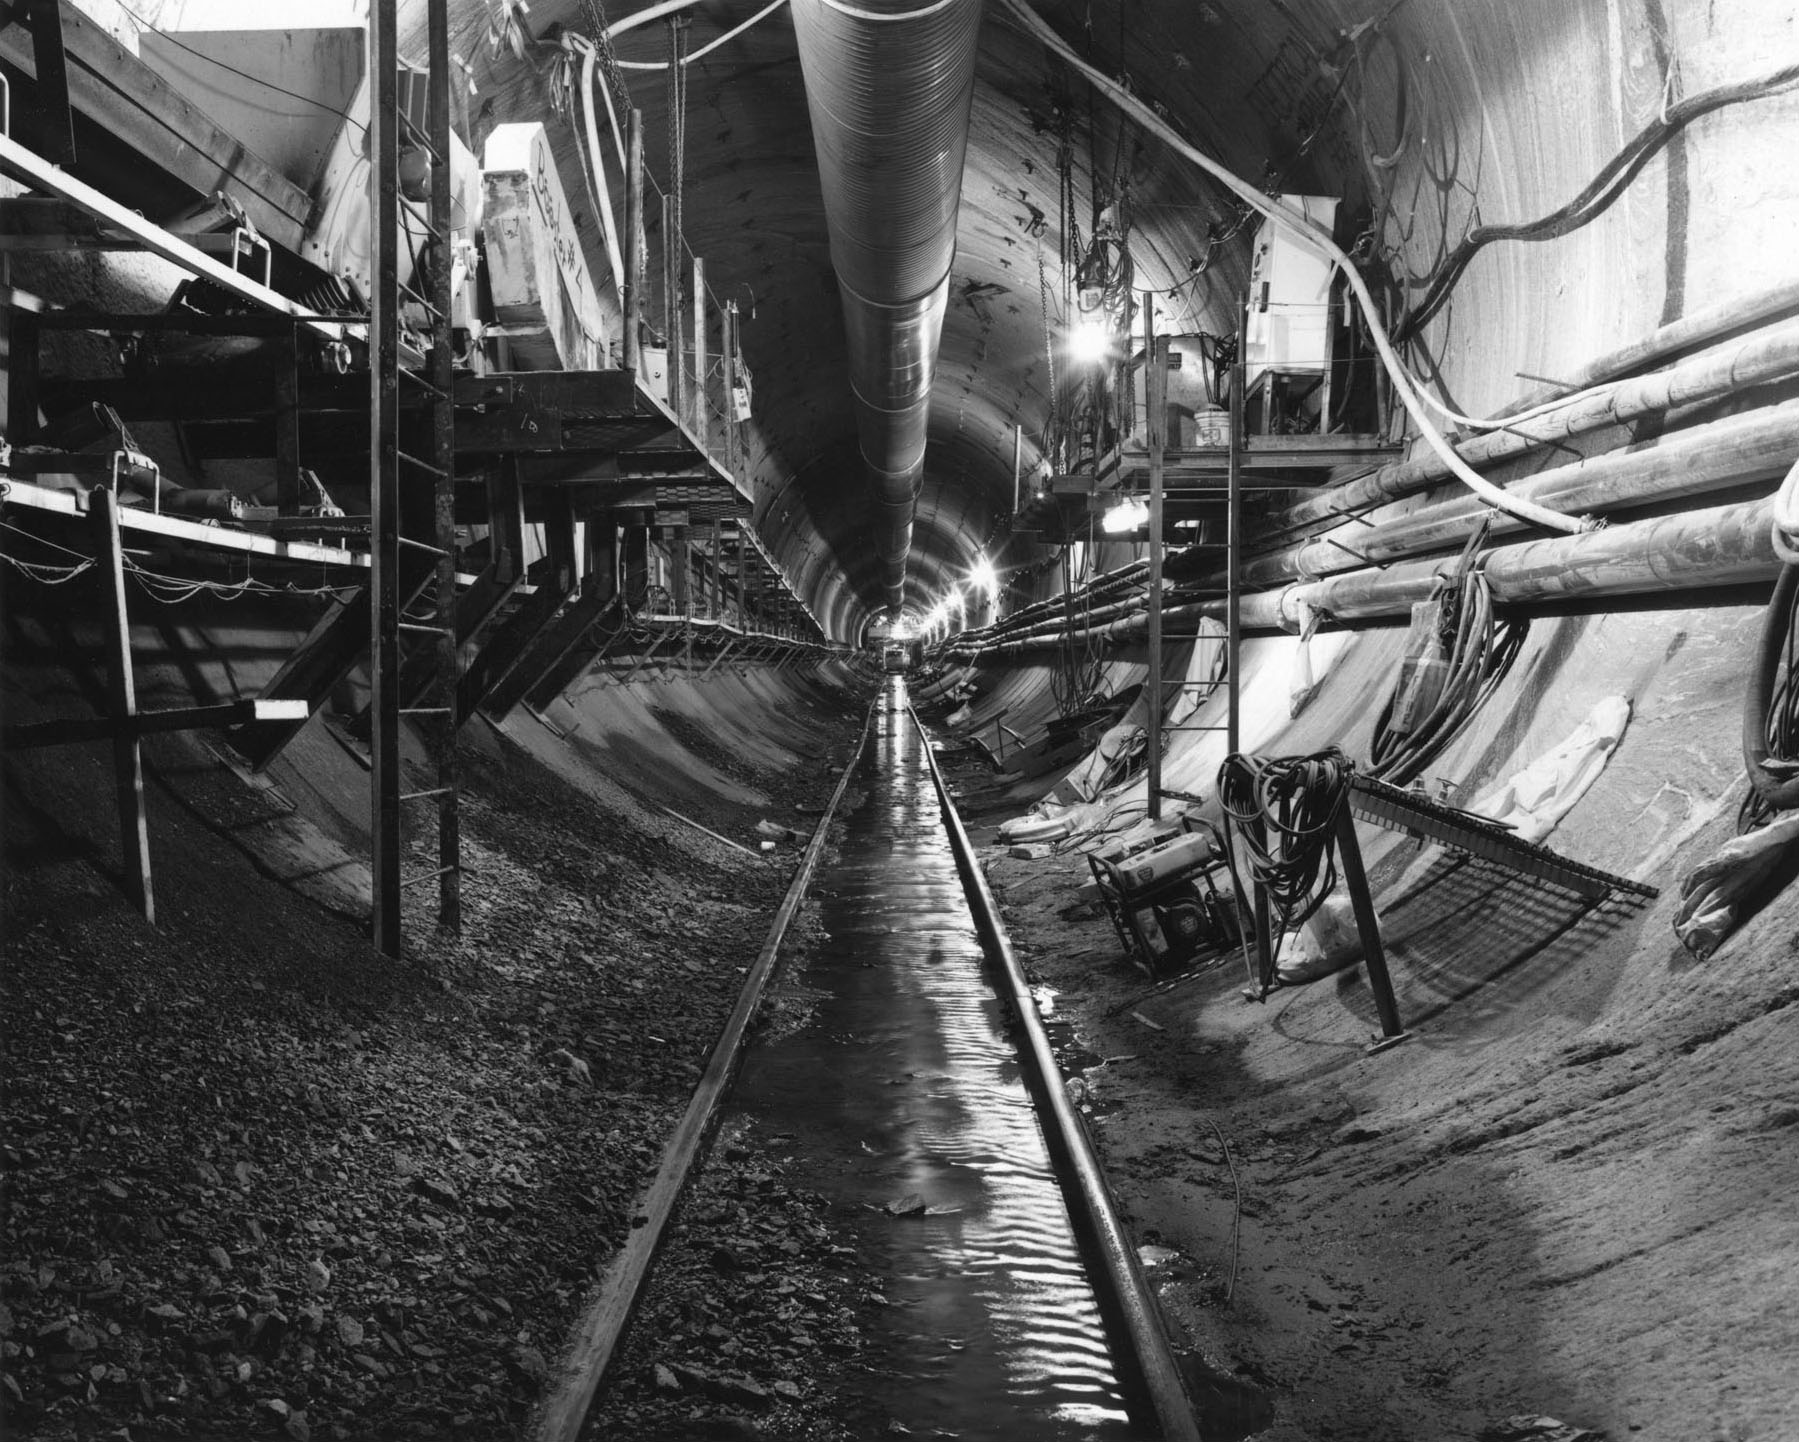 City Tunnel No. 3, Queens, New York, 1998